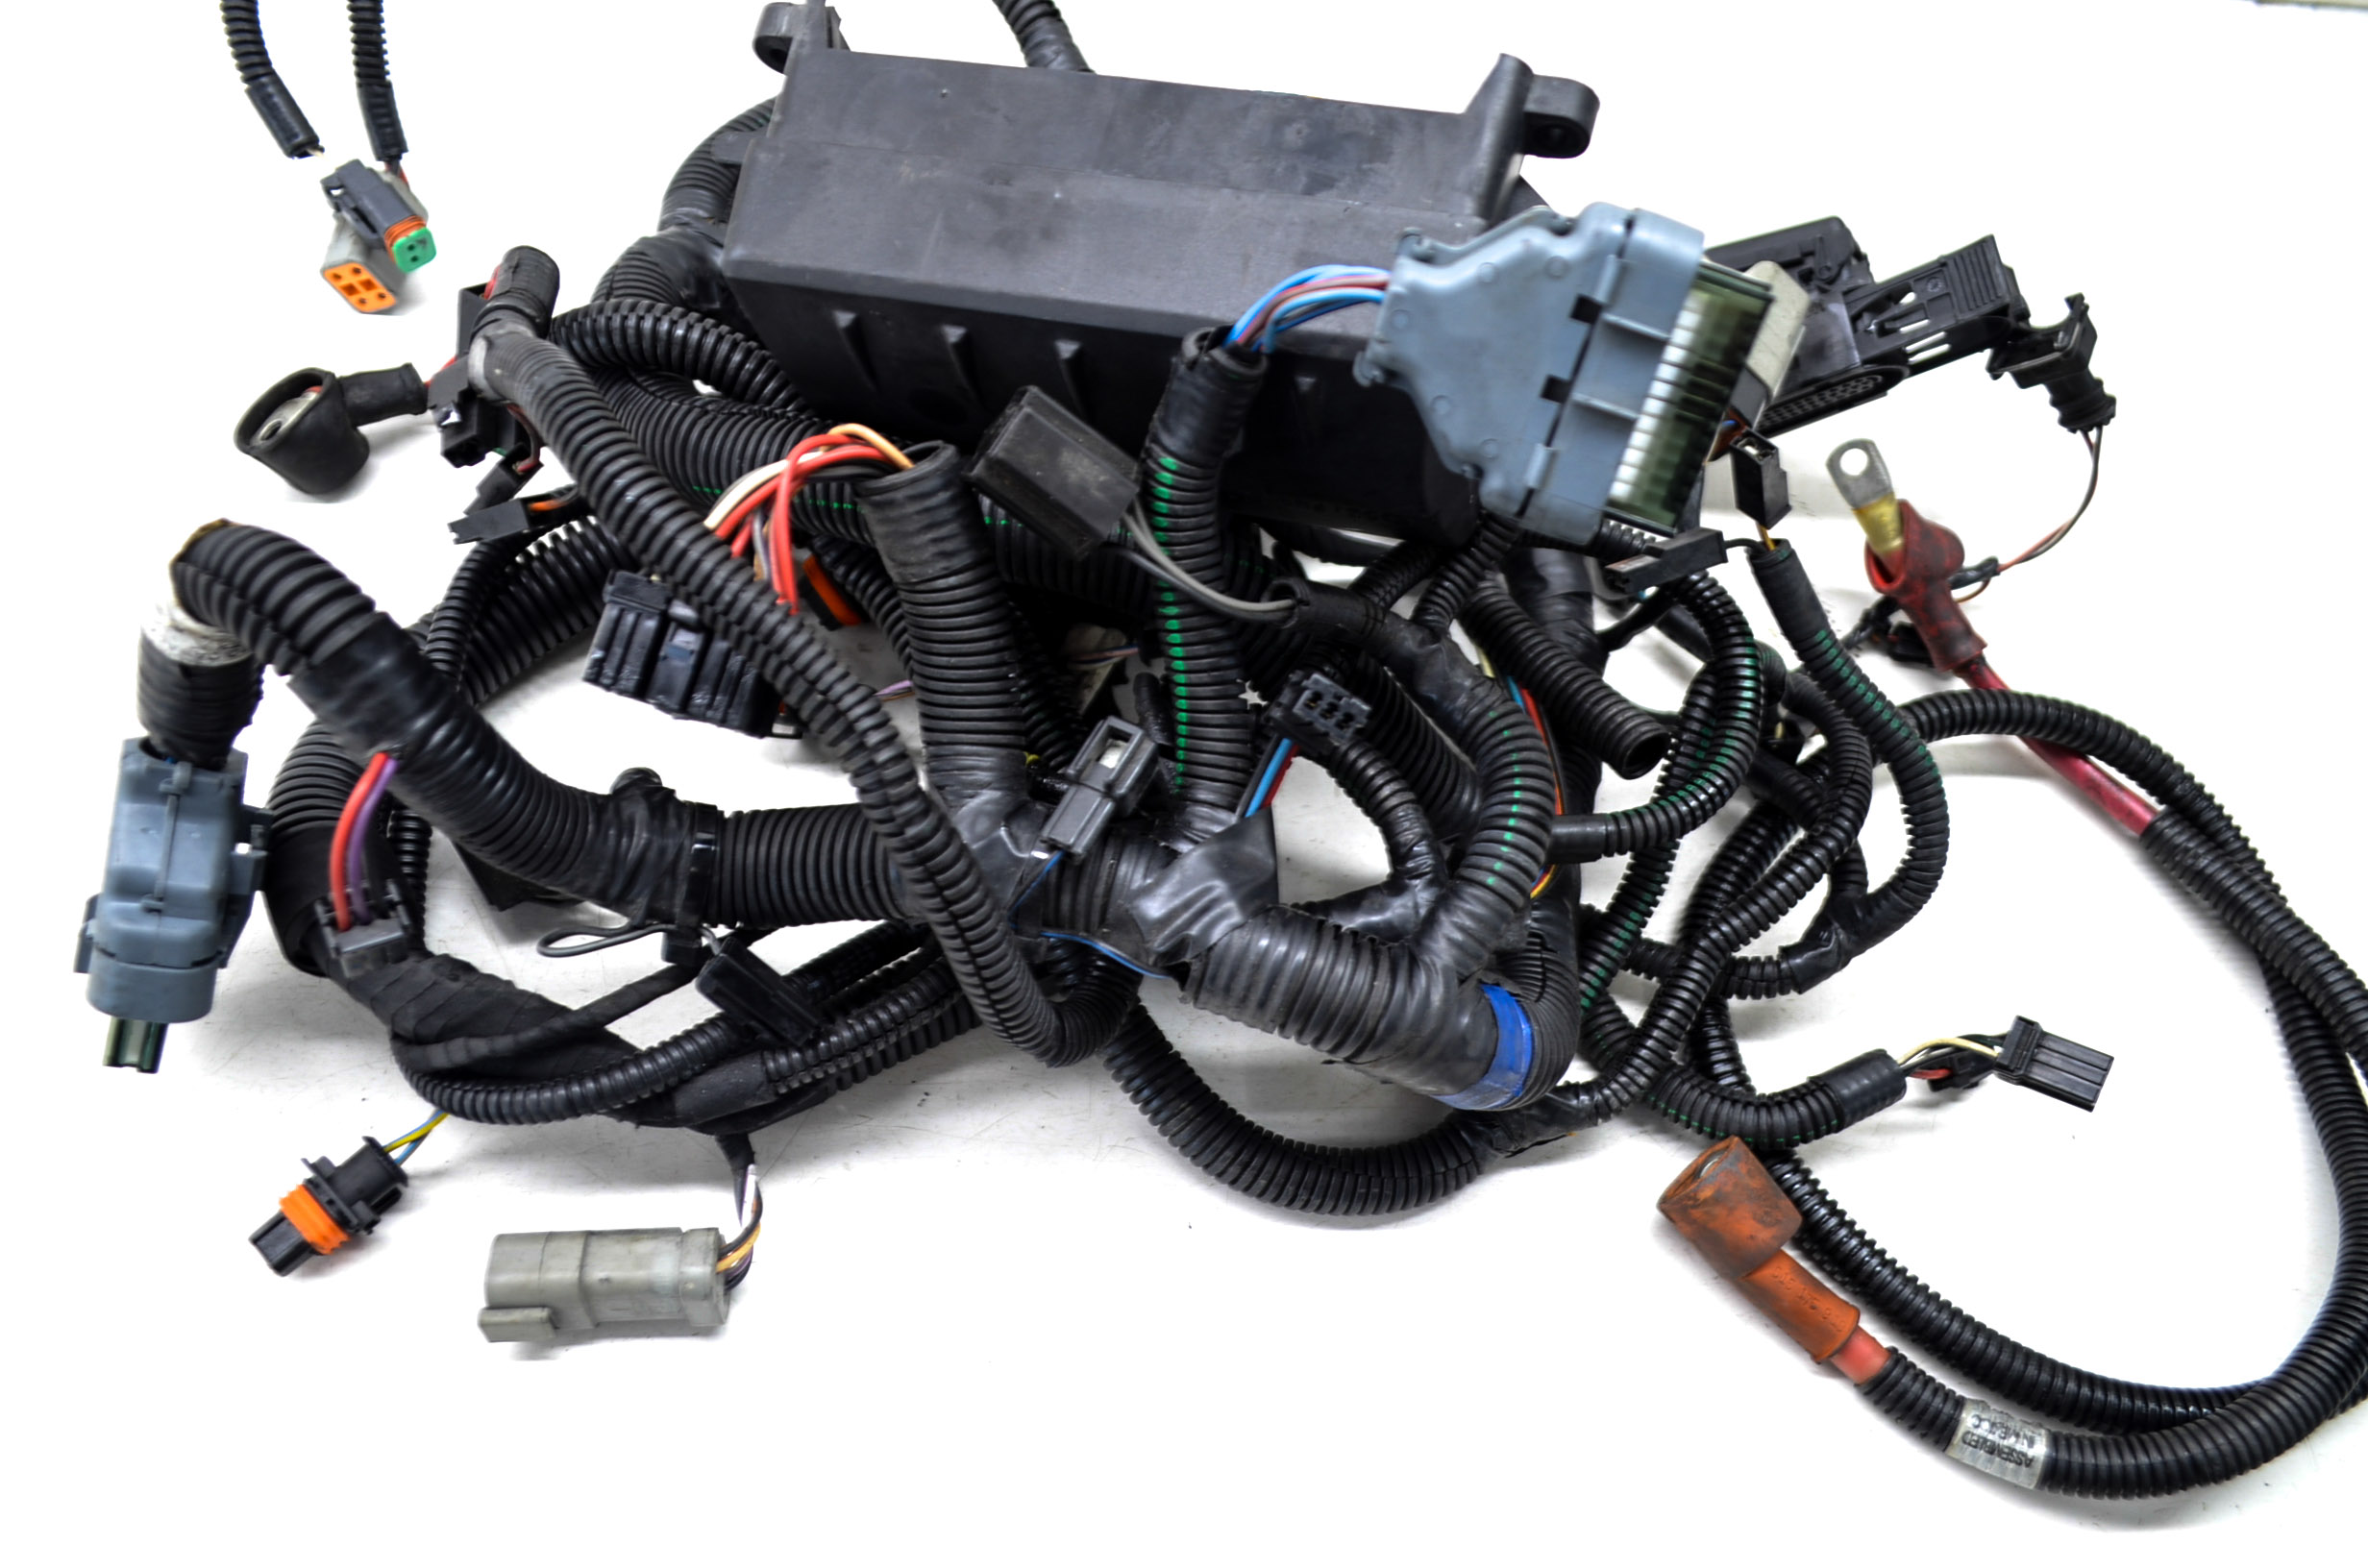 1883 12 05 ski doo mxz 600 renegade ho wire harness electrical wiring ebay 2016 Ski-Doo Renegade X Colors at readyjetset.co